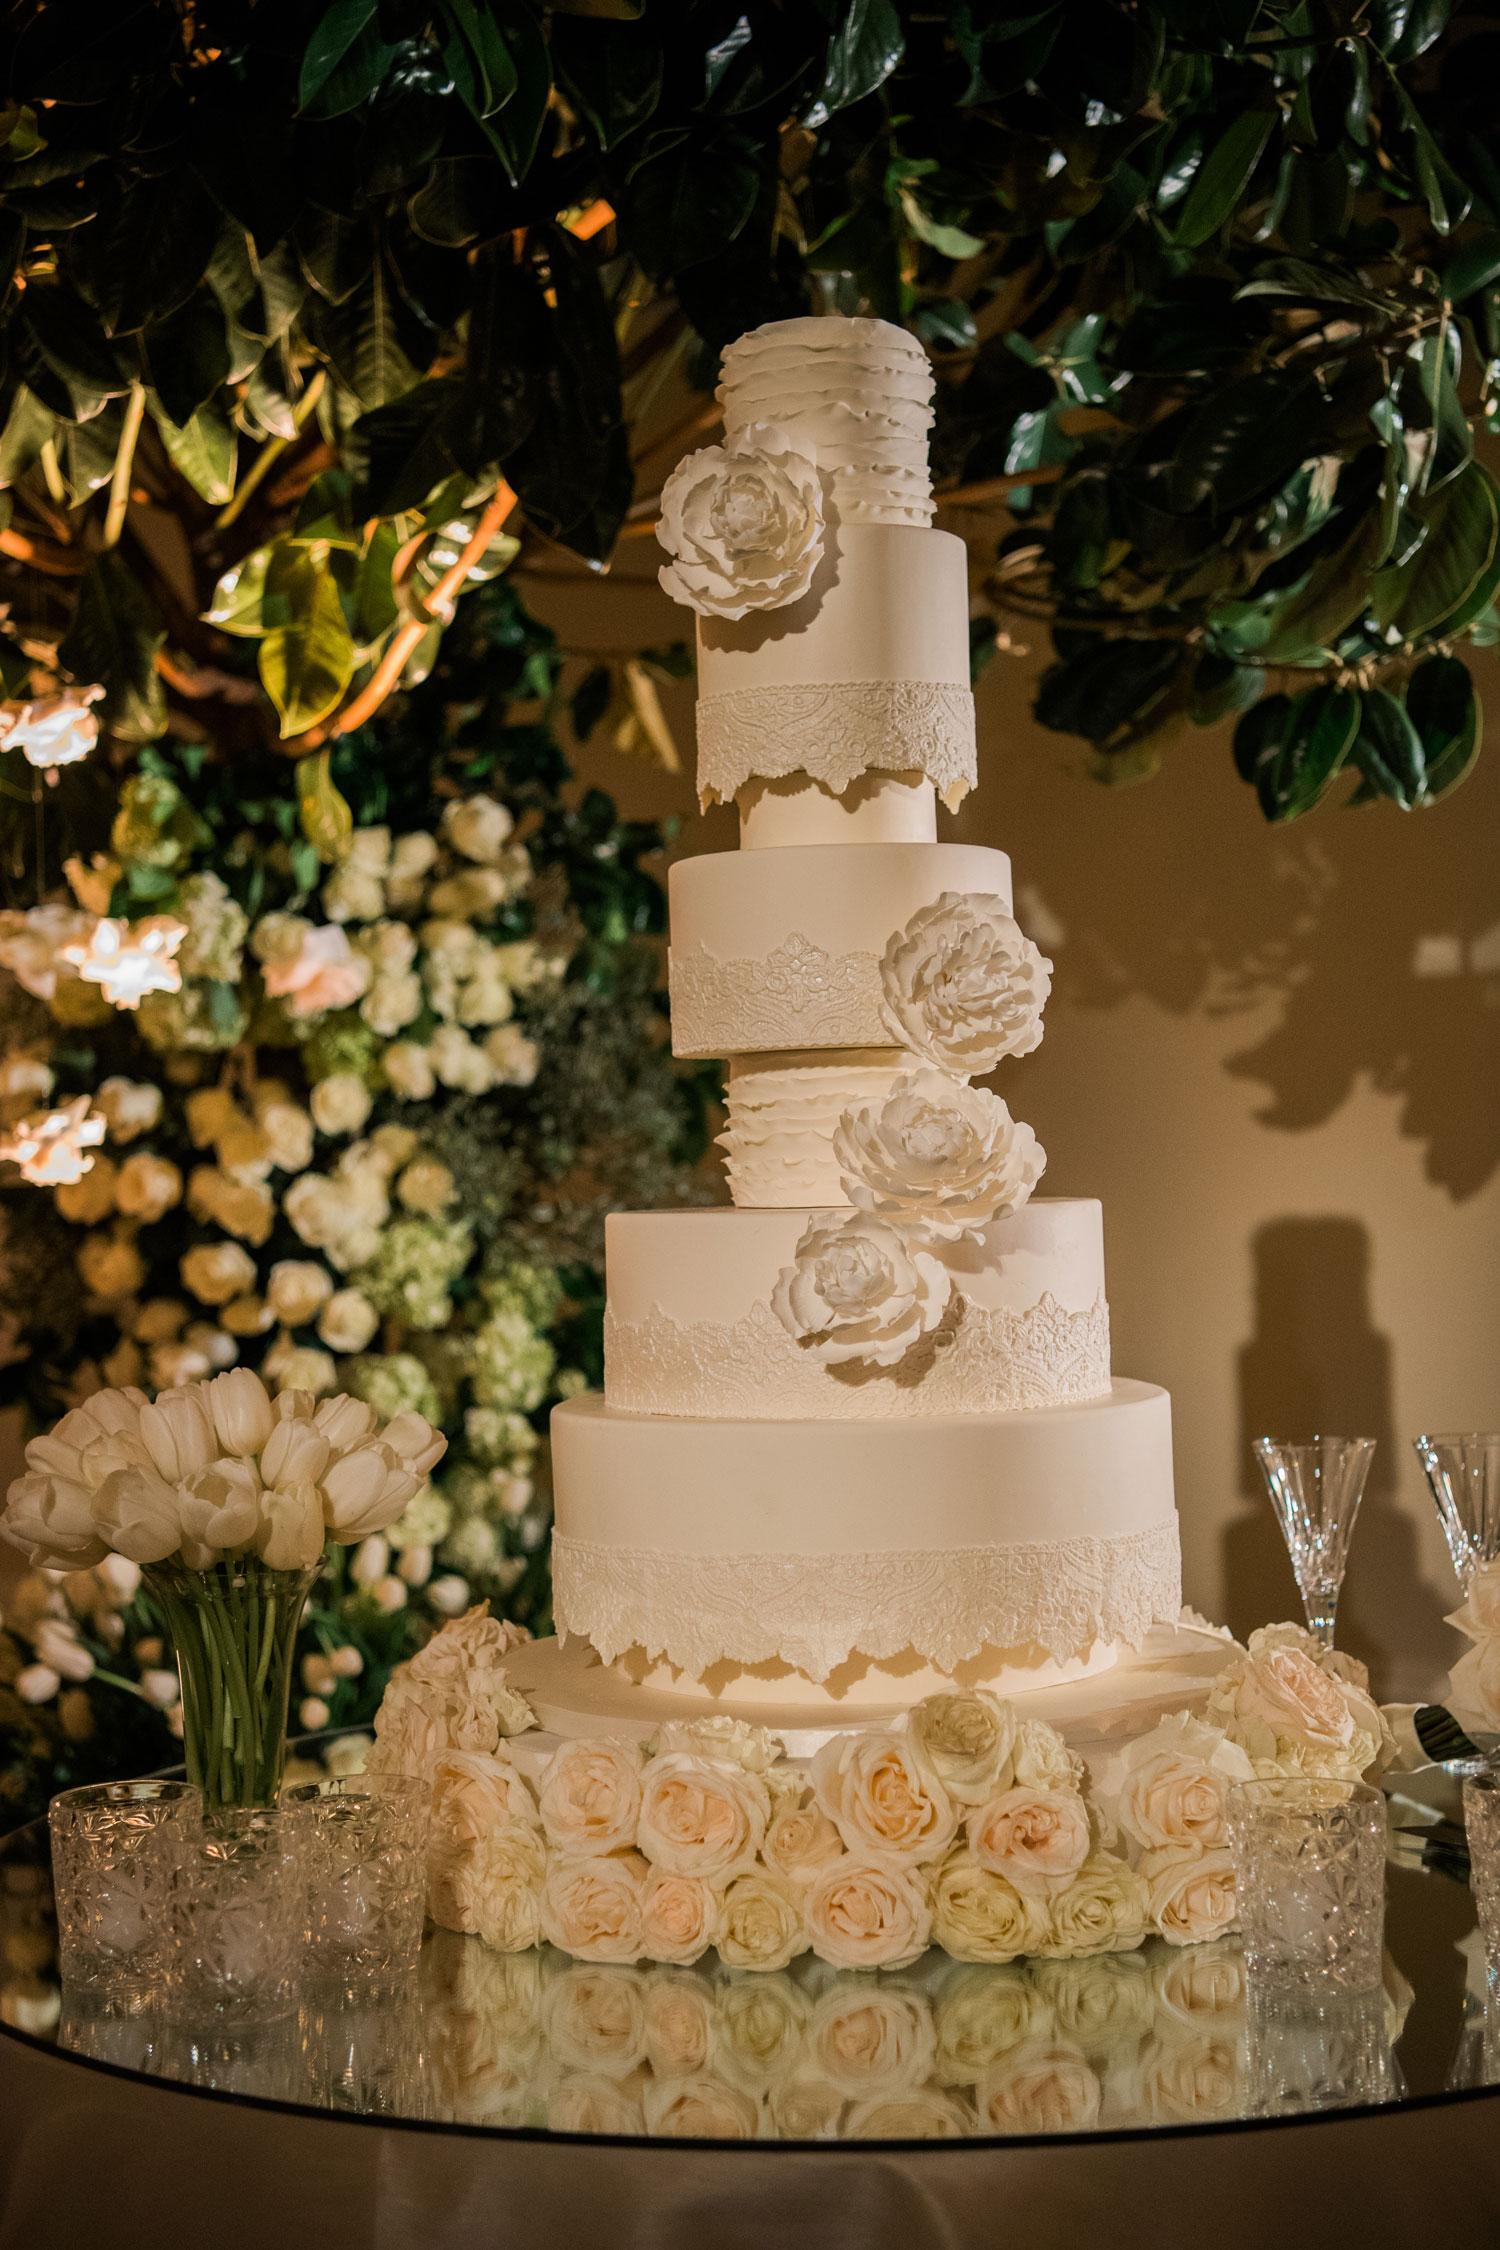 Tall wedding cake unique tiers layers flower fondant details